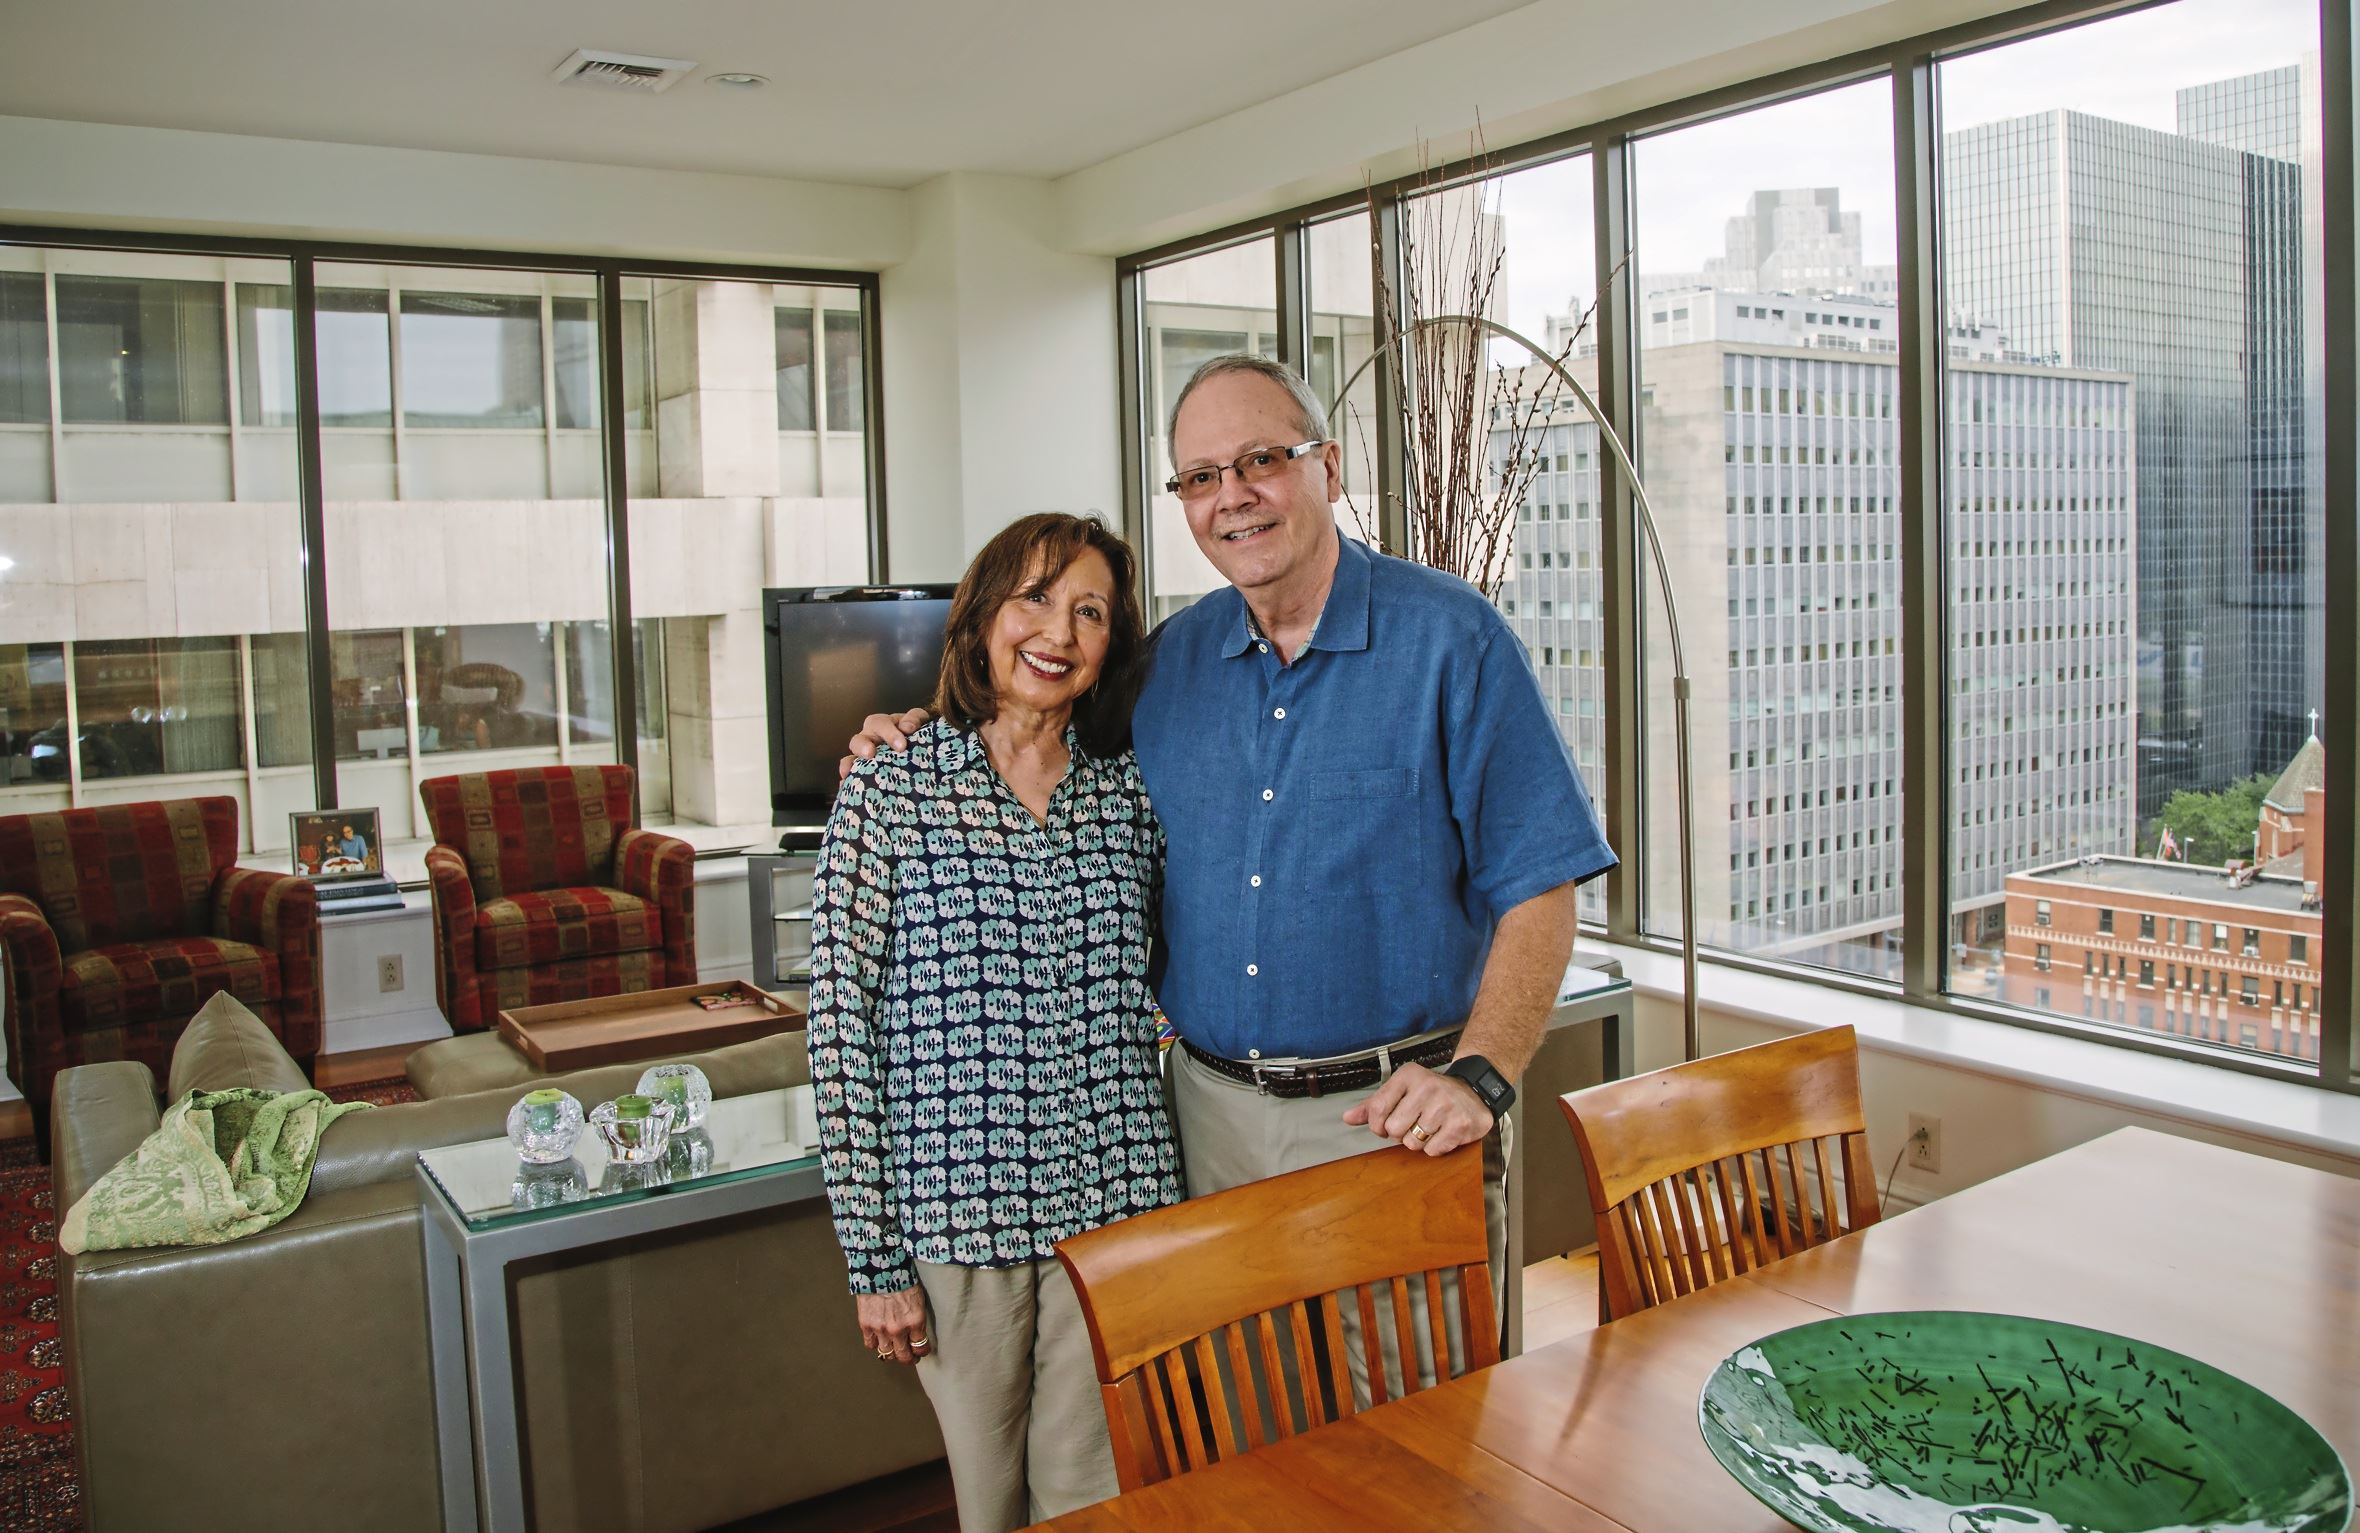 20170810arNextCondo01 Sam and Gracie Harris in their condo unit at First Side condominiums, Downtown..